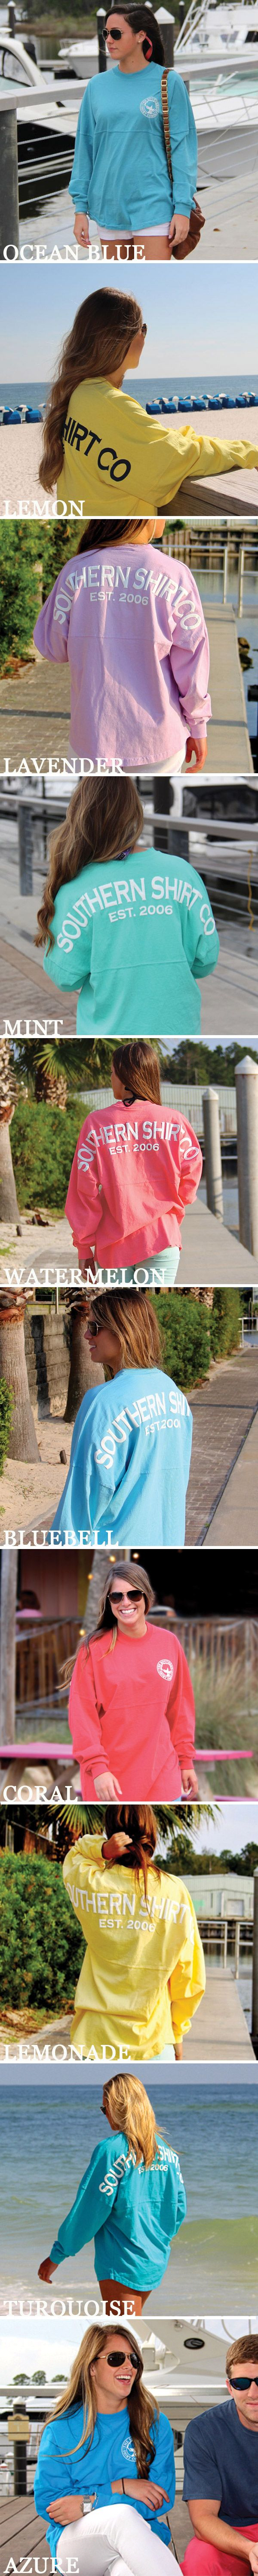 SSCo Jersey Pullovers. I saw someone wearing one at the beach the other day!